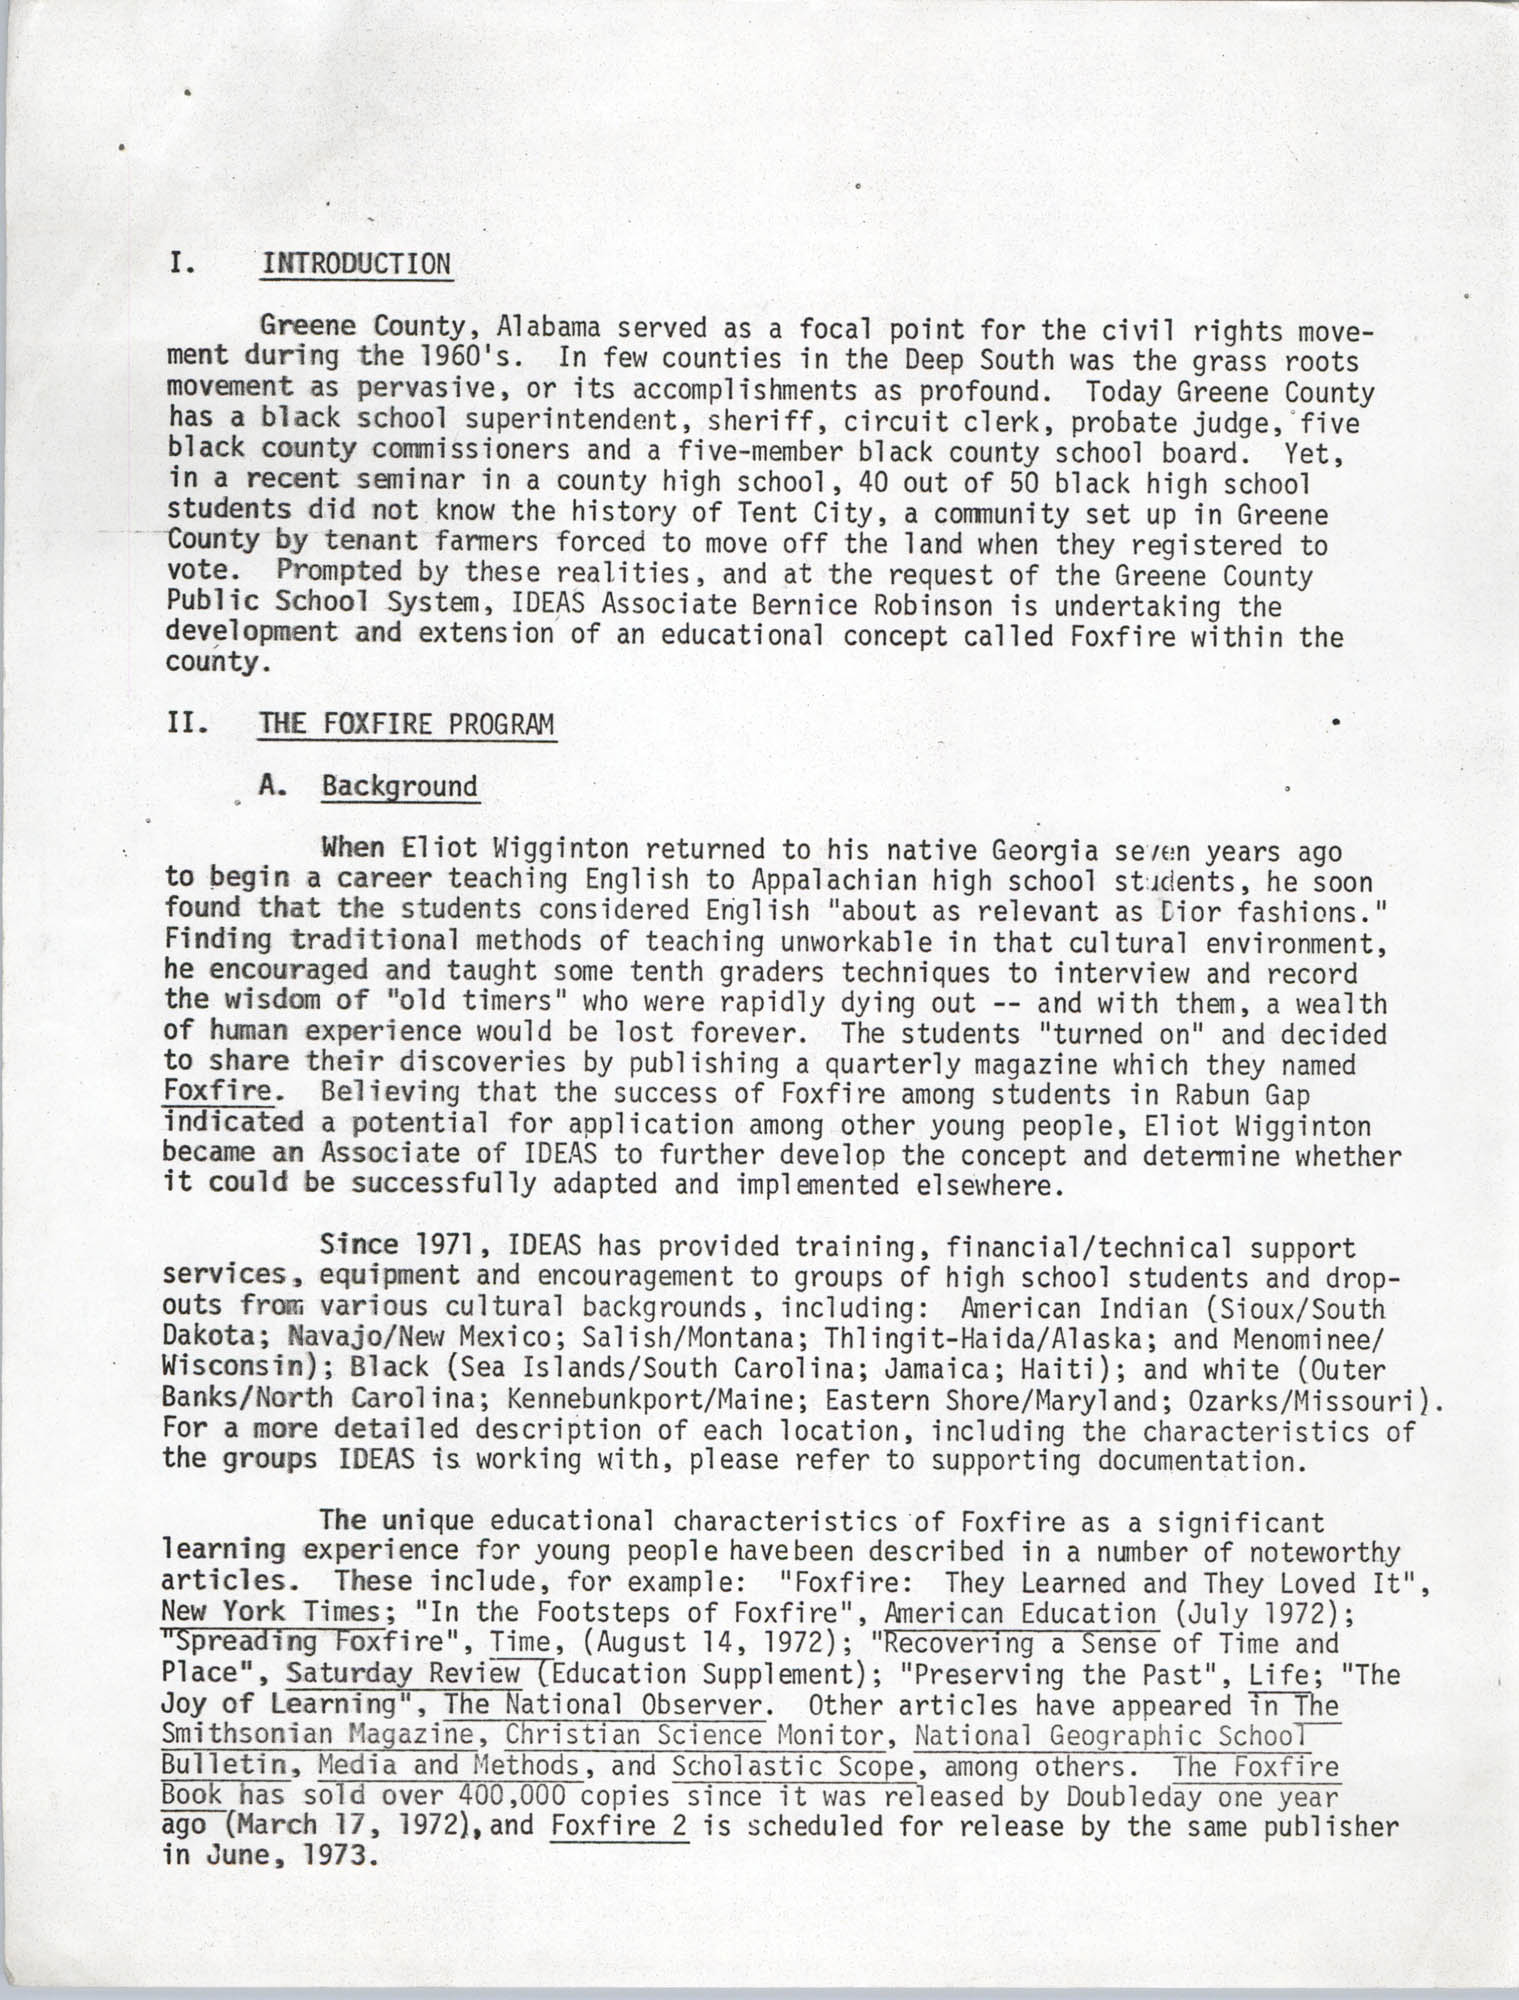 Civil Rights Movement Oral History Project, Foxfire Learning Concept, Page 1